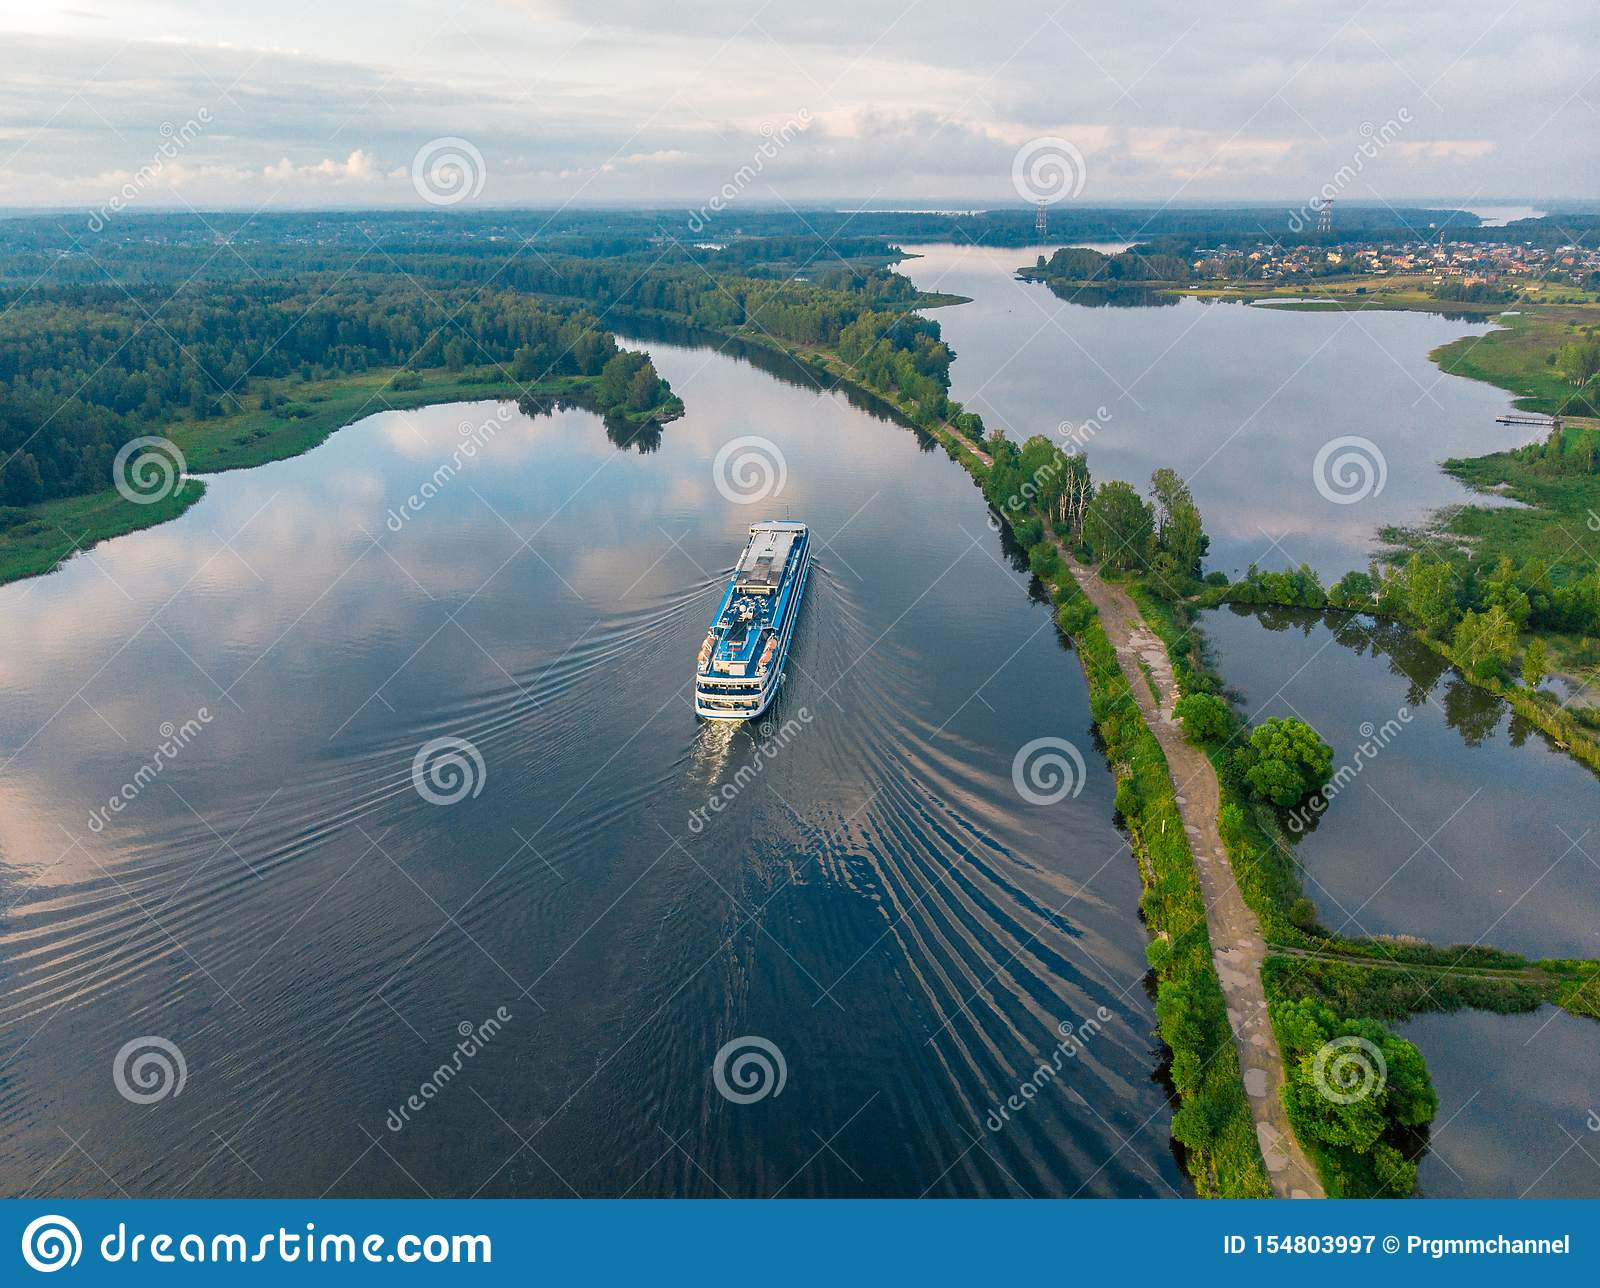 View from above on a ship going along the blue river